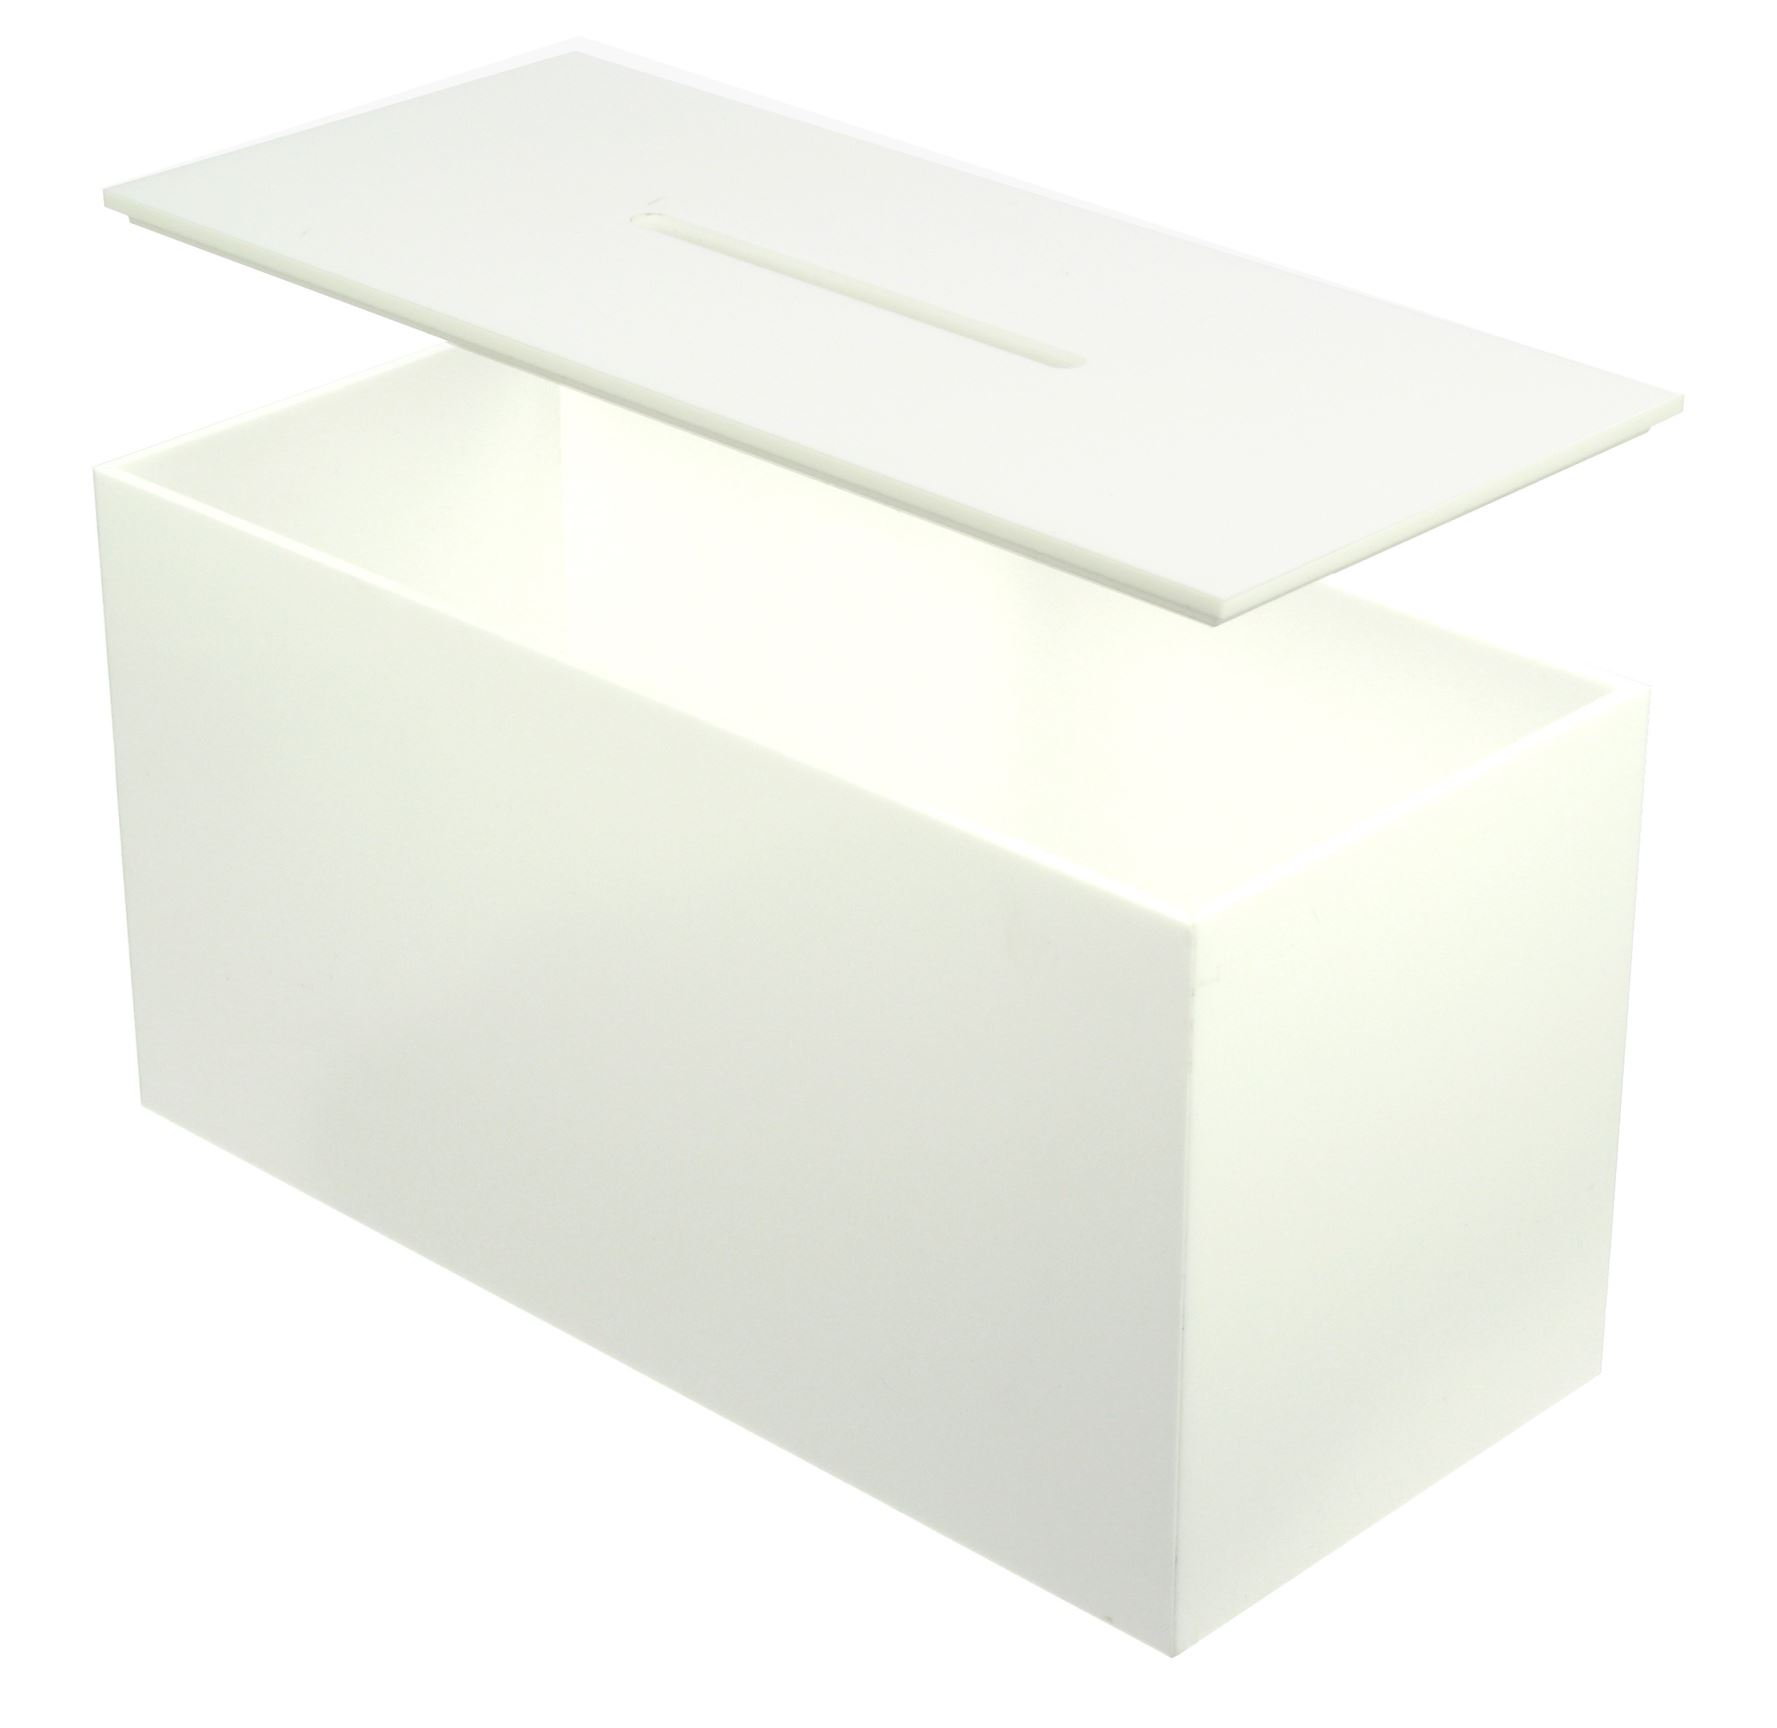 Business Card Collector Box Gallery - Card Design And Card Template